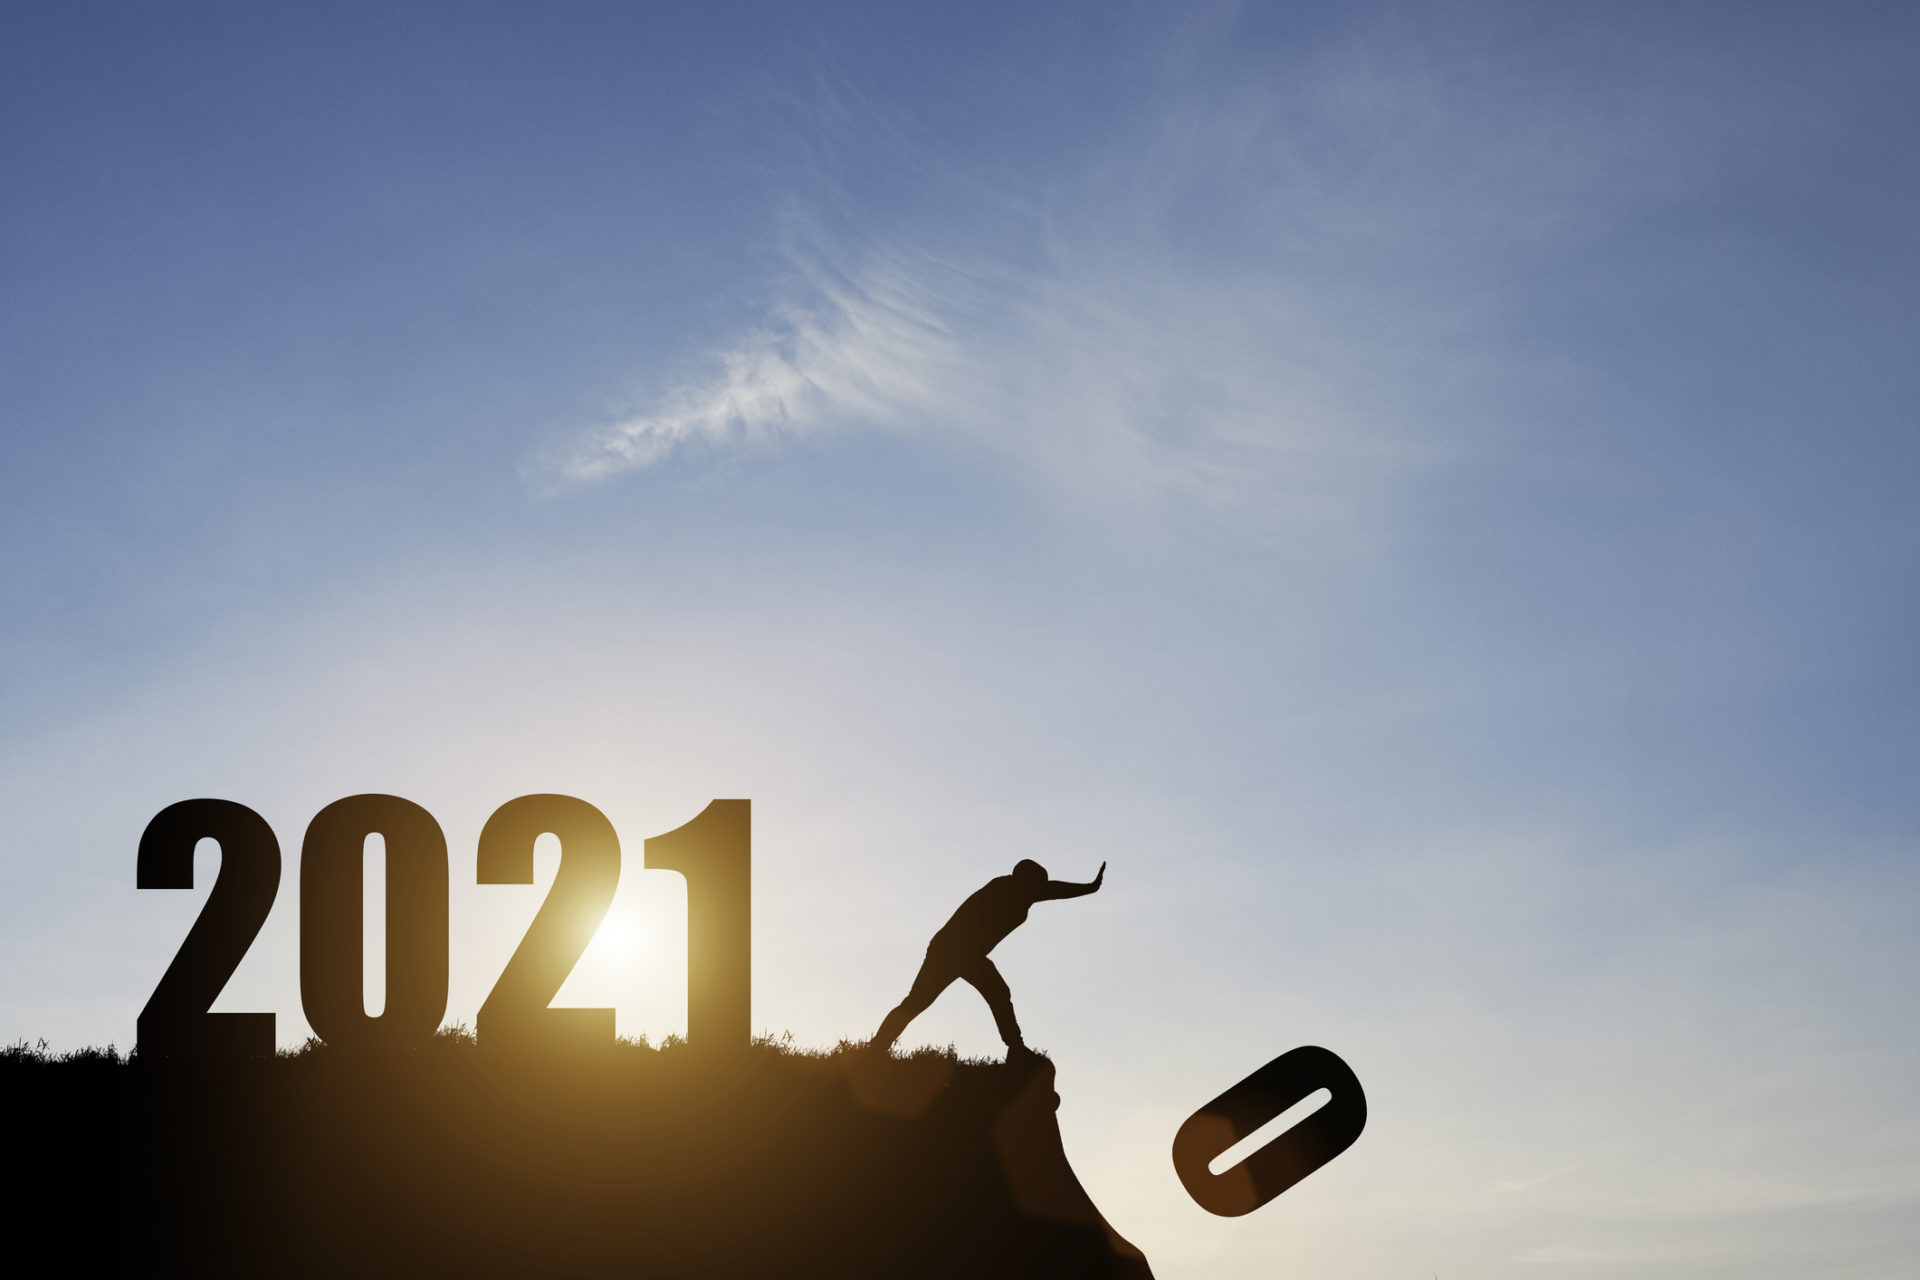 2021 - A year of positive change?